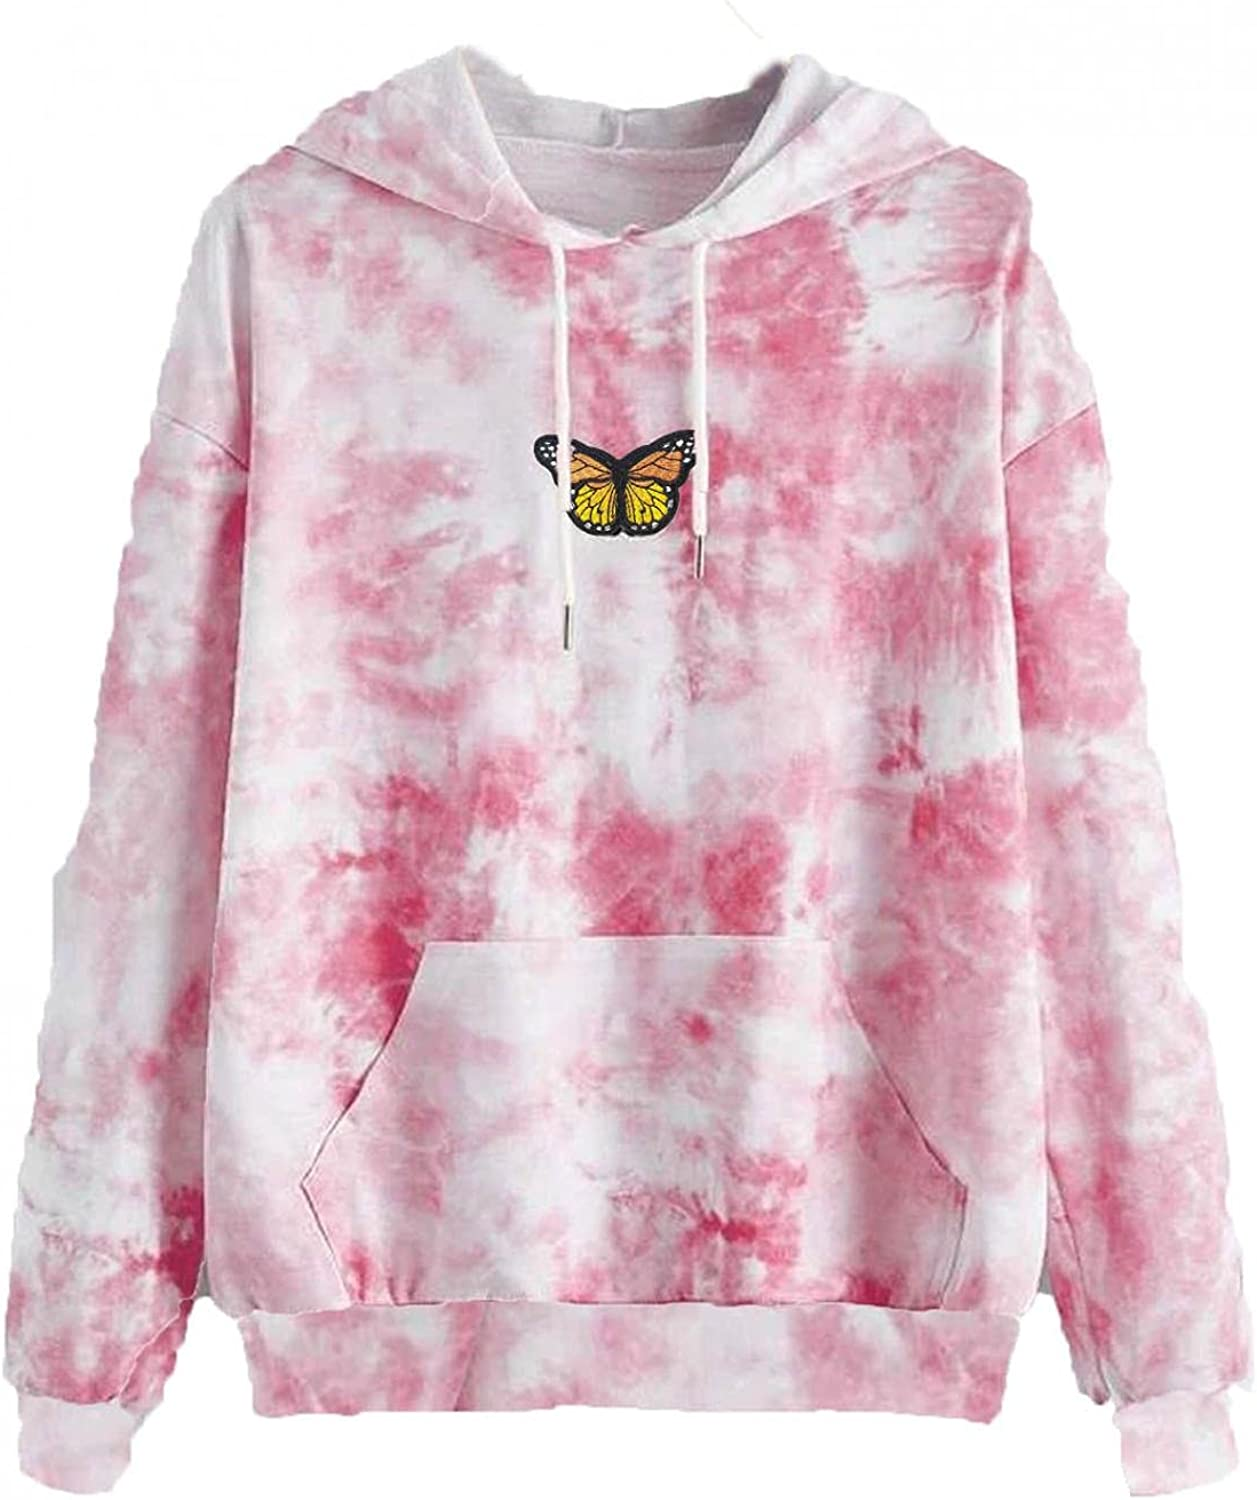 UOCUFY Hoodies for Women, Womens Plus Size Pullover Sweatshirts Autumn and Winter Cute Printing Long Sleeve Hoodies